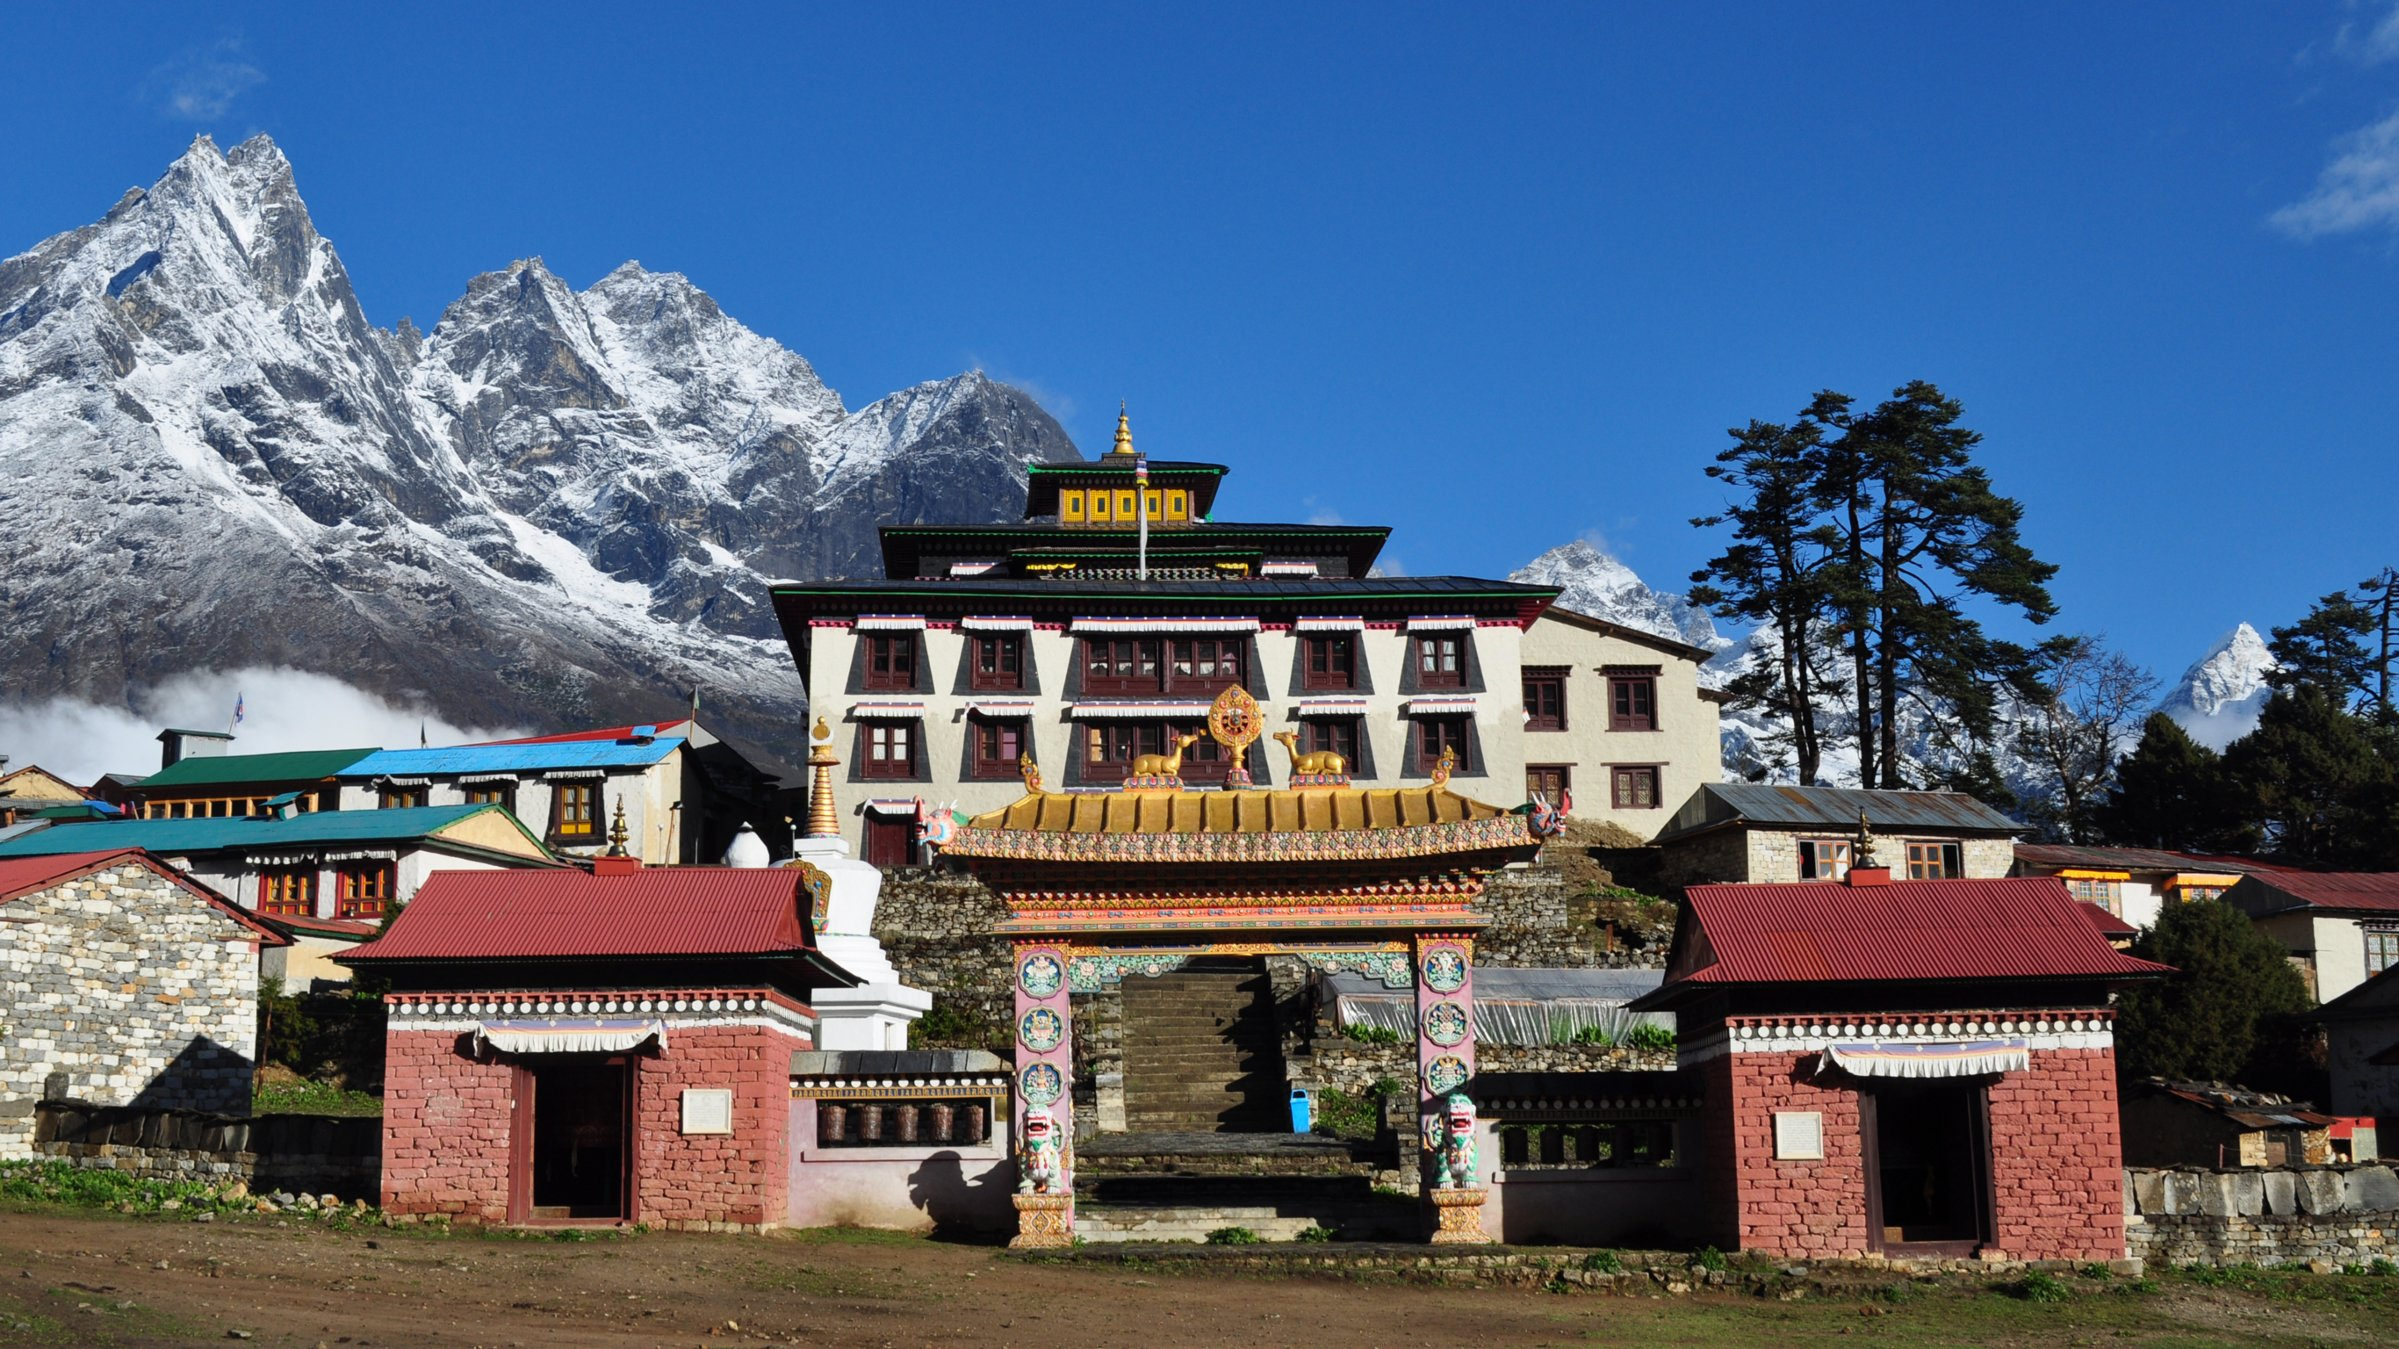 9-Day Concise Everest Base Camp Trek - Nepal Itinerary